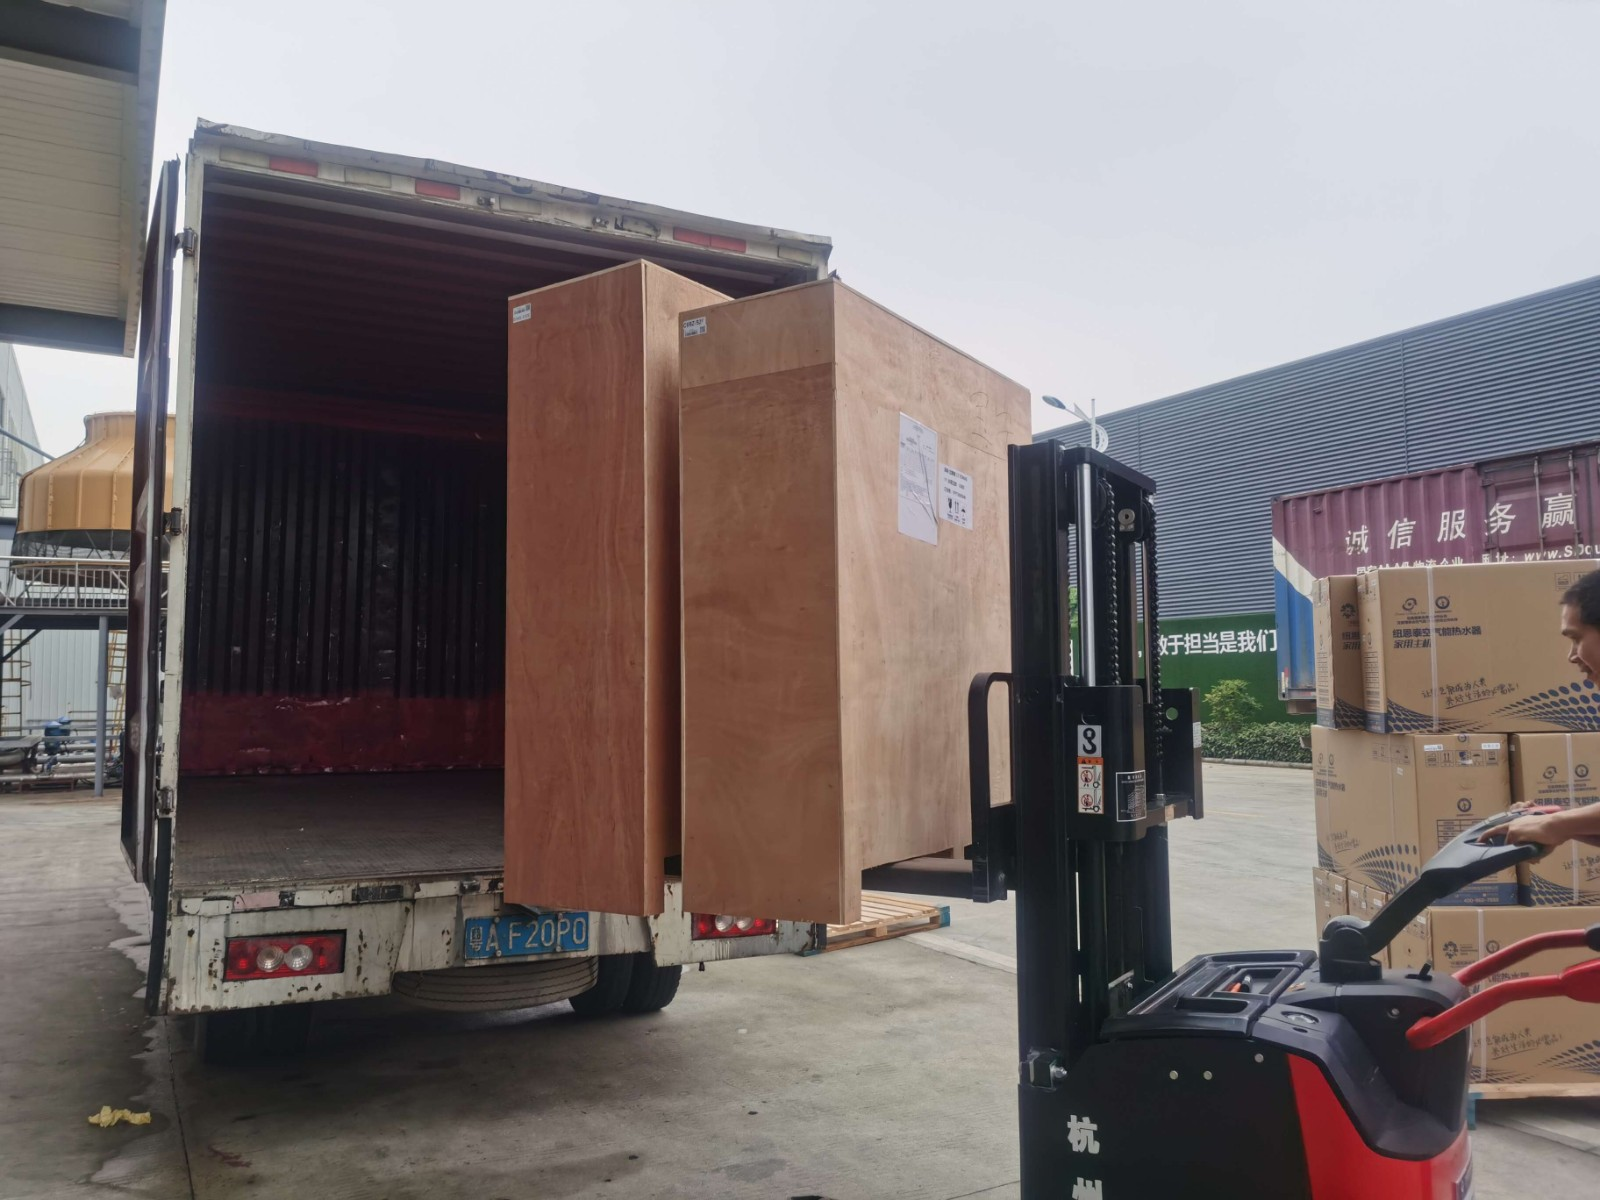 news-NULITE-2,800 Pieces Air Source Heat Pumps Delivery-img-1